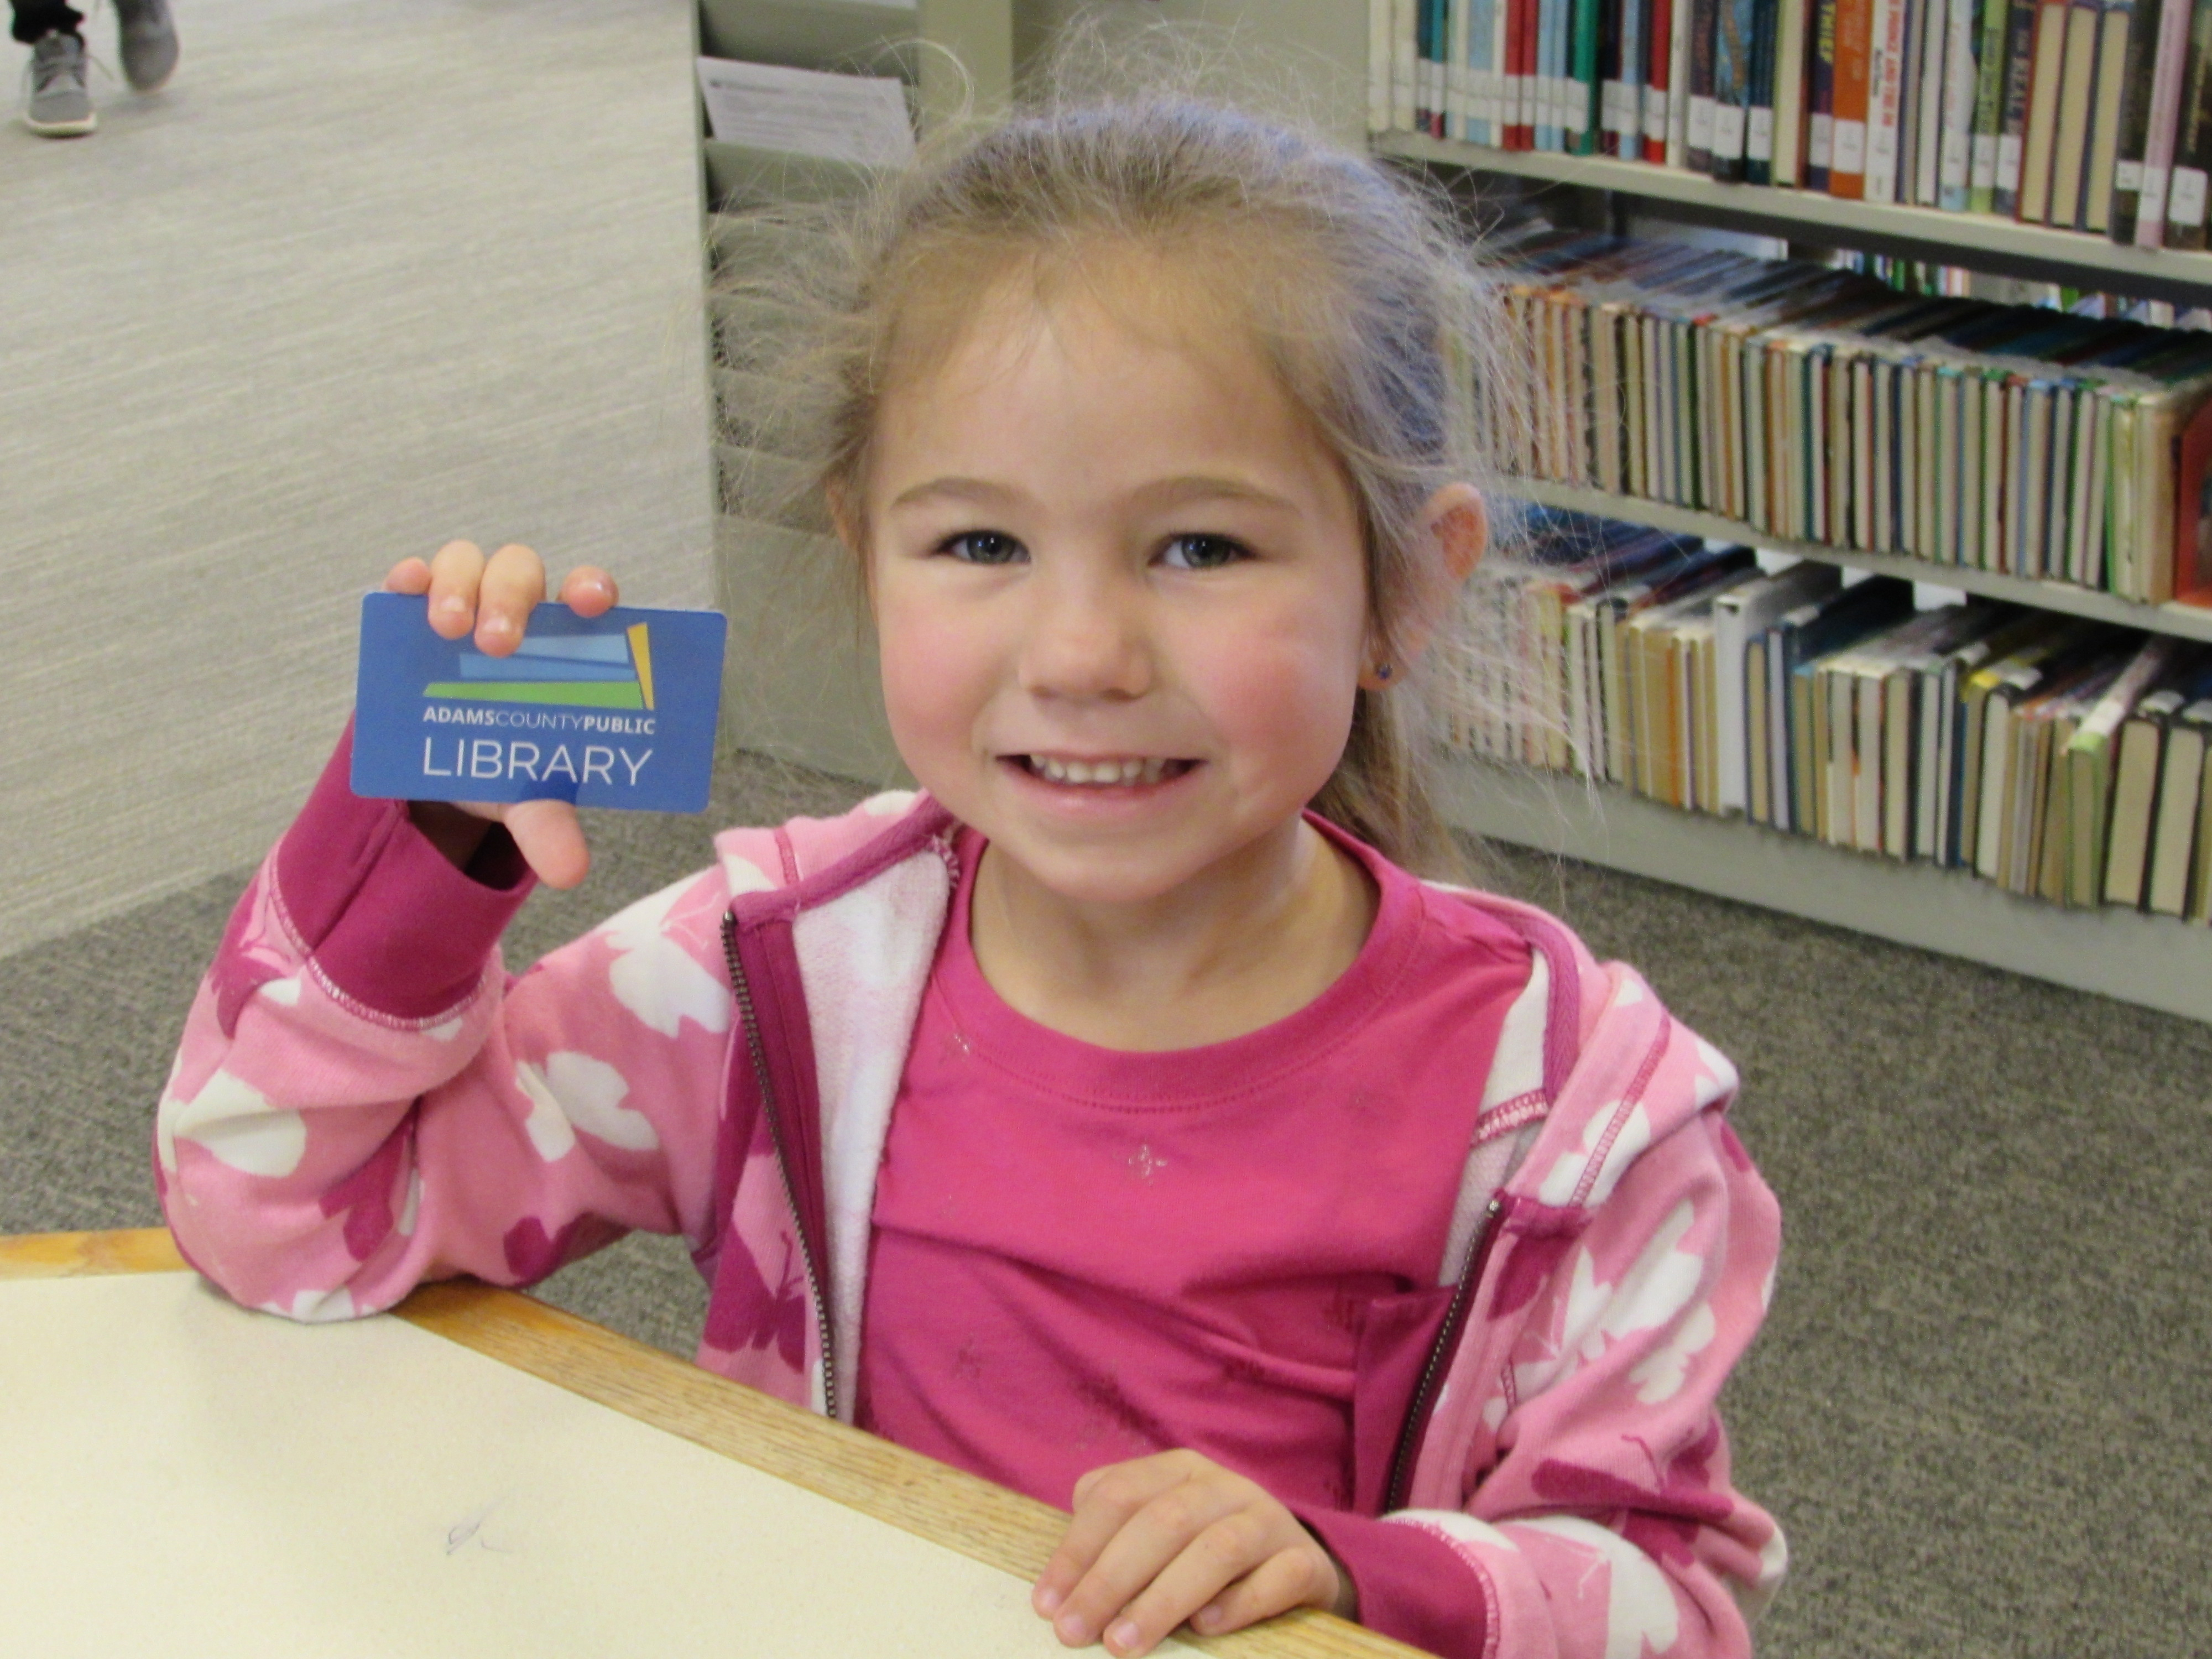 Jaylee Crum was excited to sign up for her first library card.